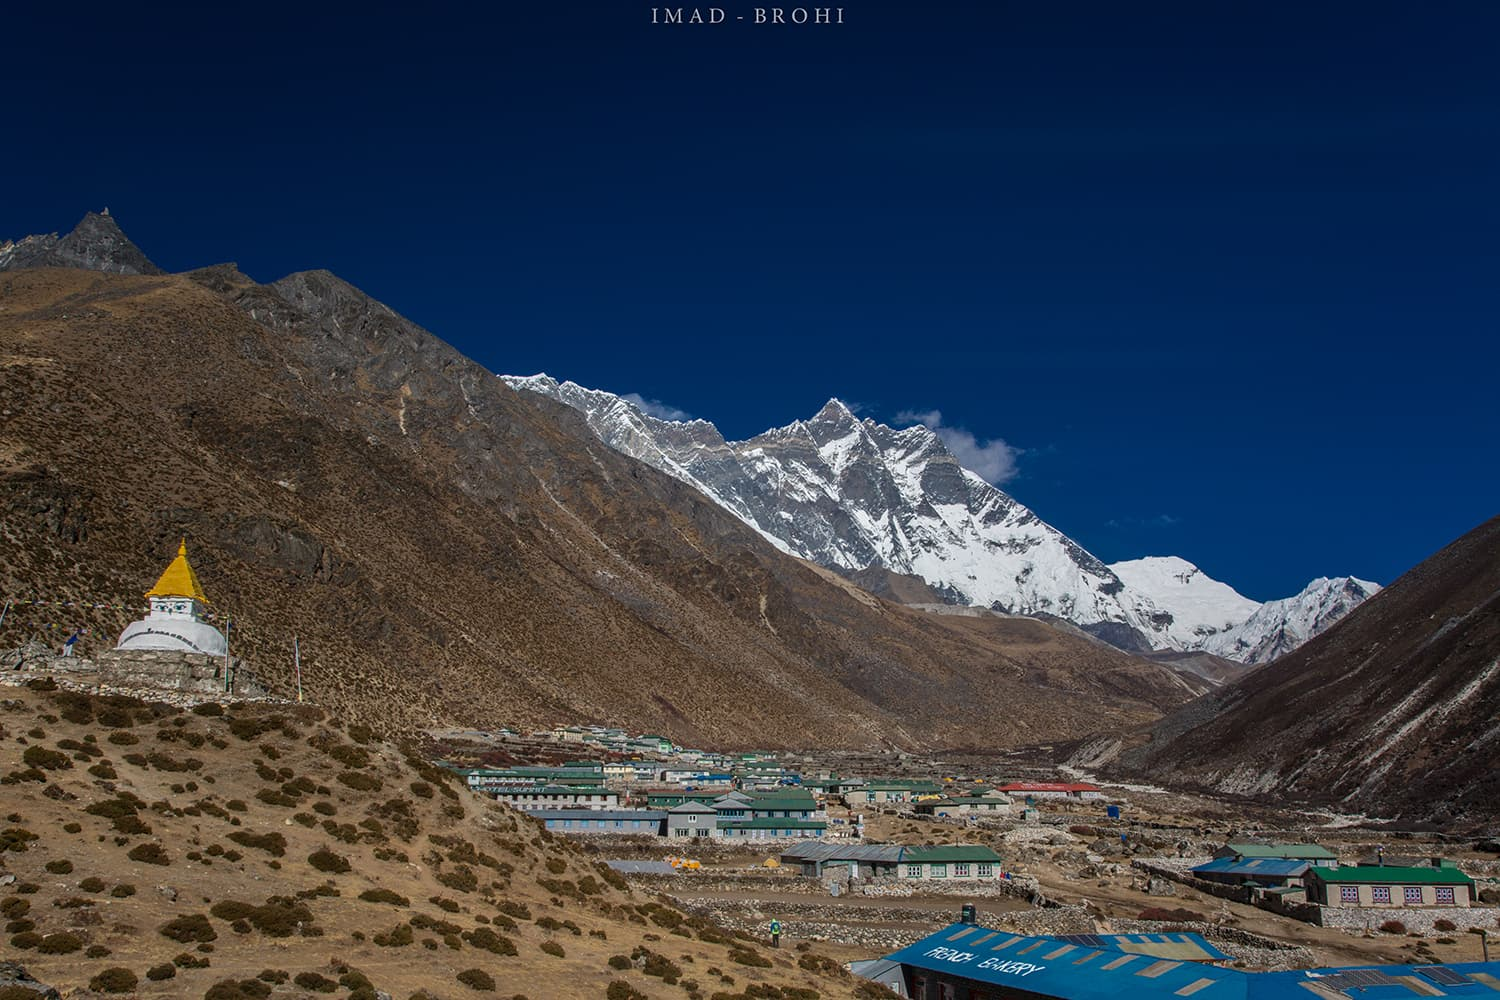 Day 6: Arrival at Dingboche. A stupa stands on guard with lodges in the community and Lhotse in the back drop.